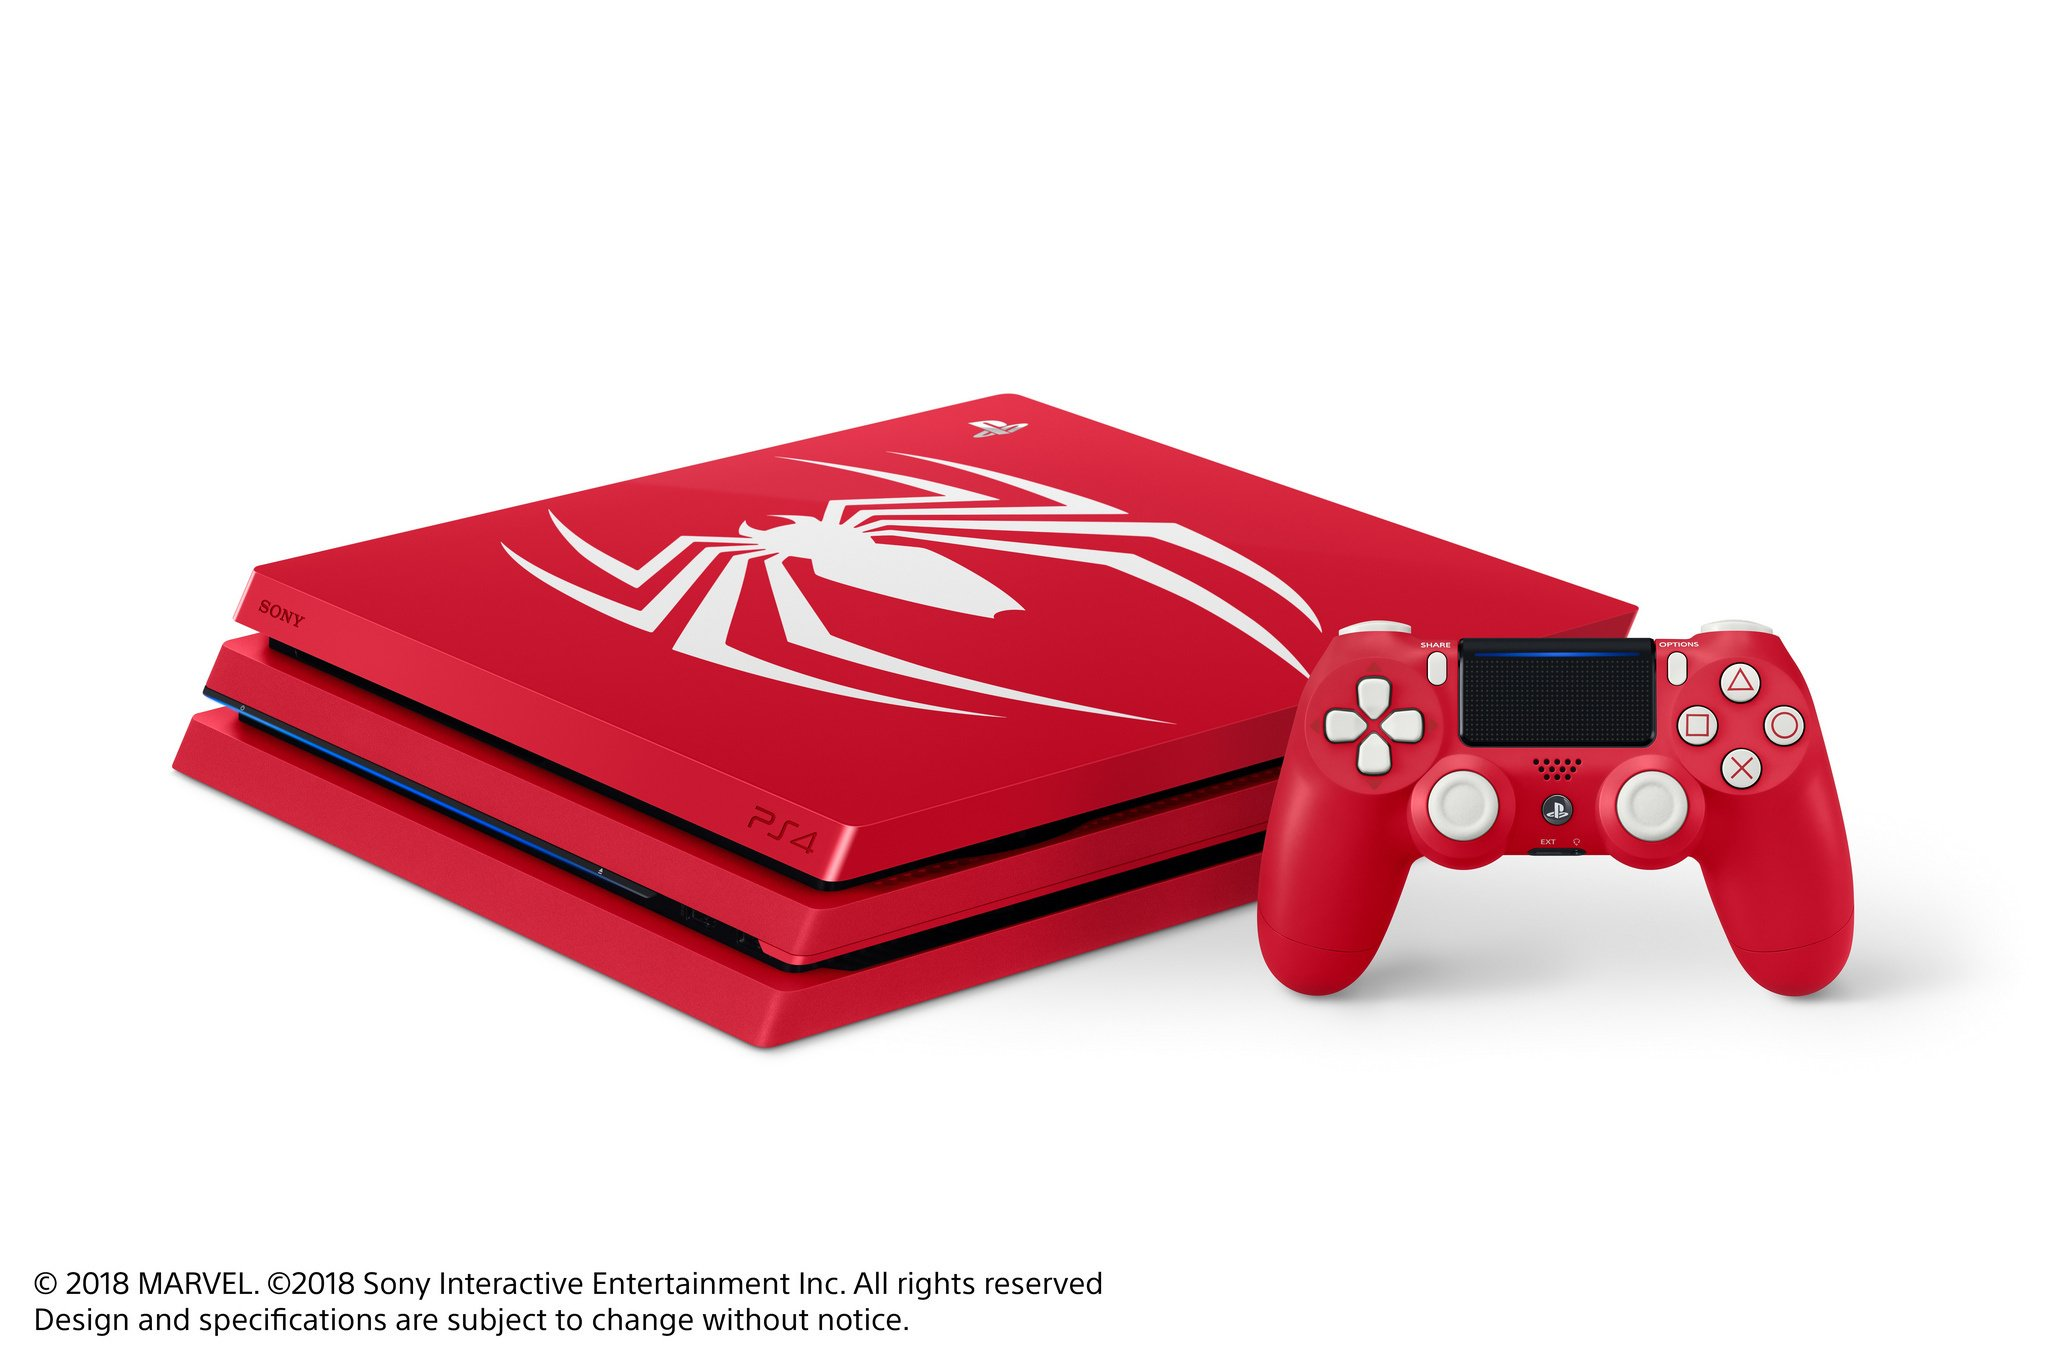 box Only Moderate Price Spider-man Limited Edition Ps4 Pro 1tb Console Good Condition